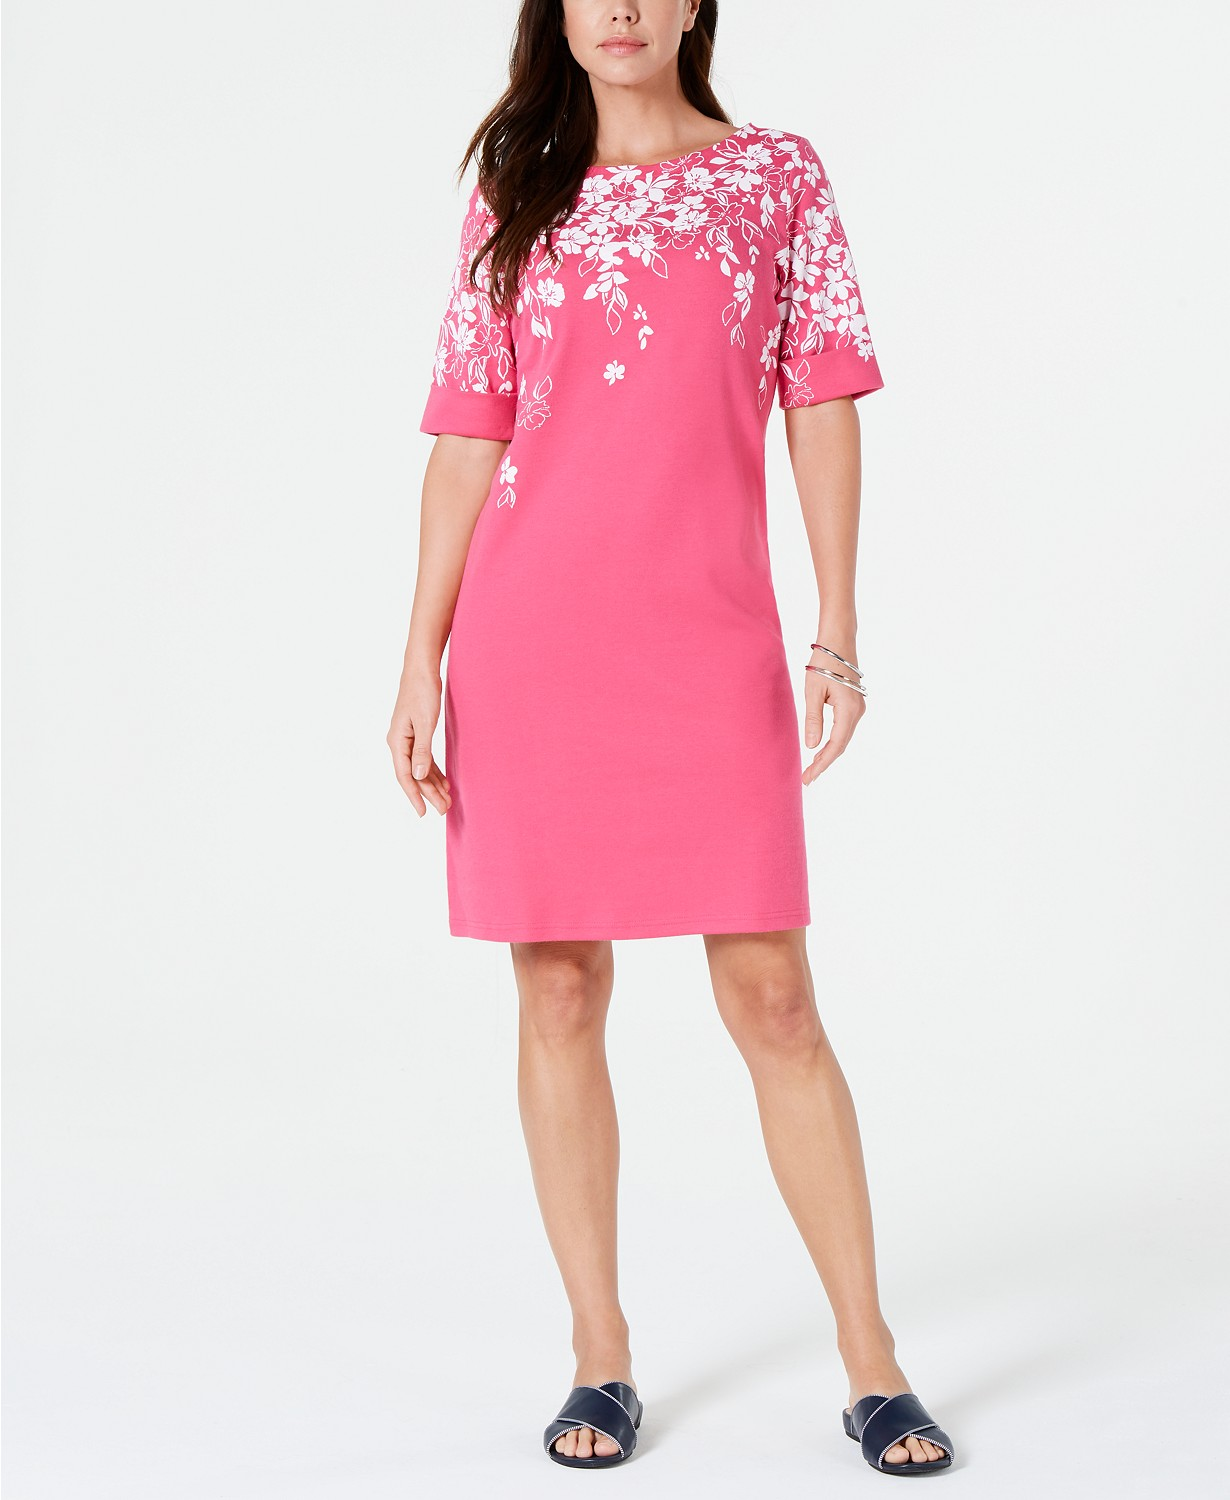 Pink and floral Karen Scott dress for spring.